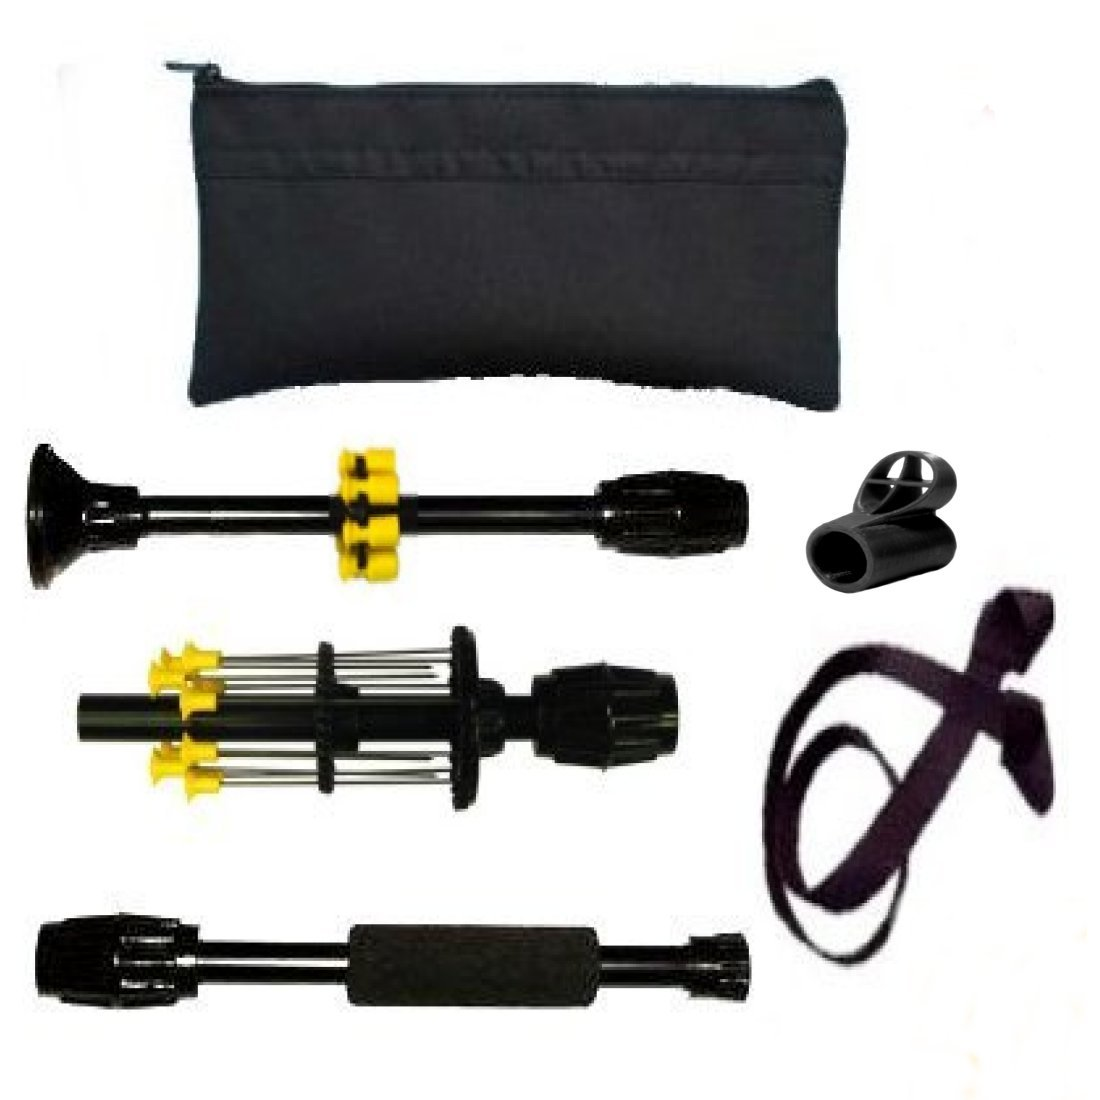 36'' Venom Blowguns Stow-away™ Collapsing Black .40c Blowgun with Darts Made in USA